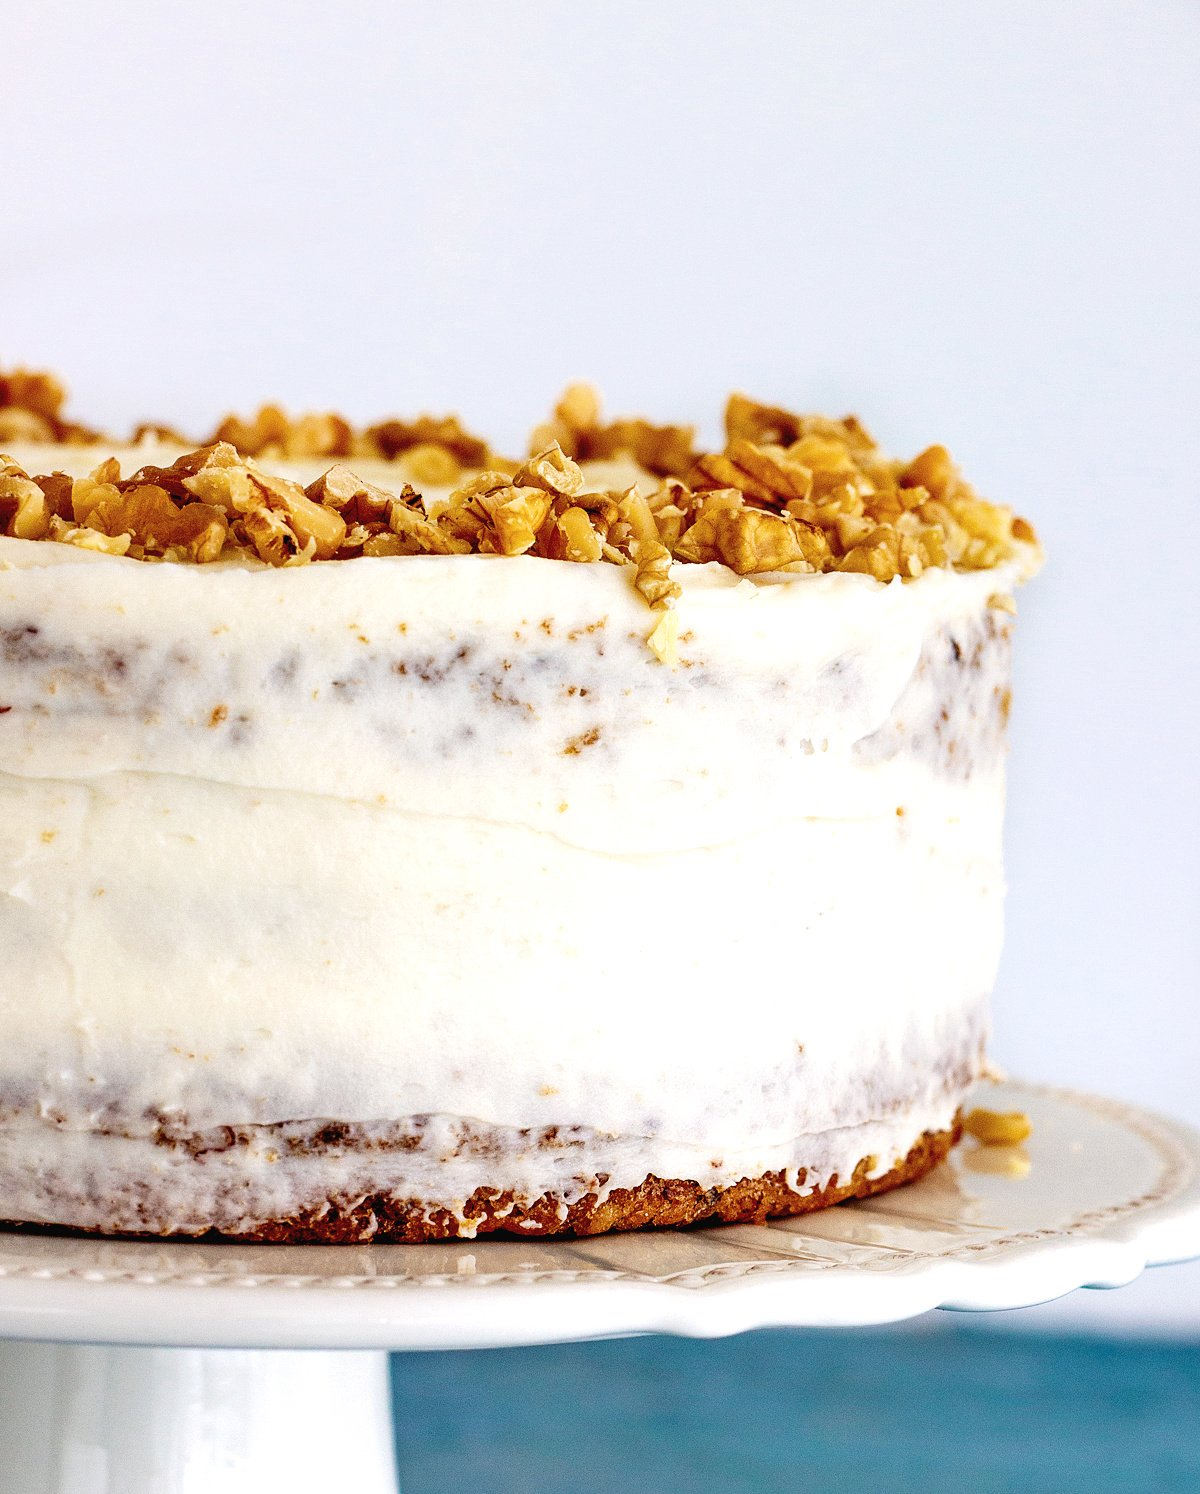 Partial view of whole frosted cake on a white cake stand with walnuts on top